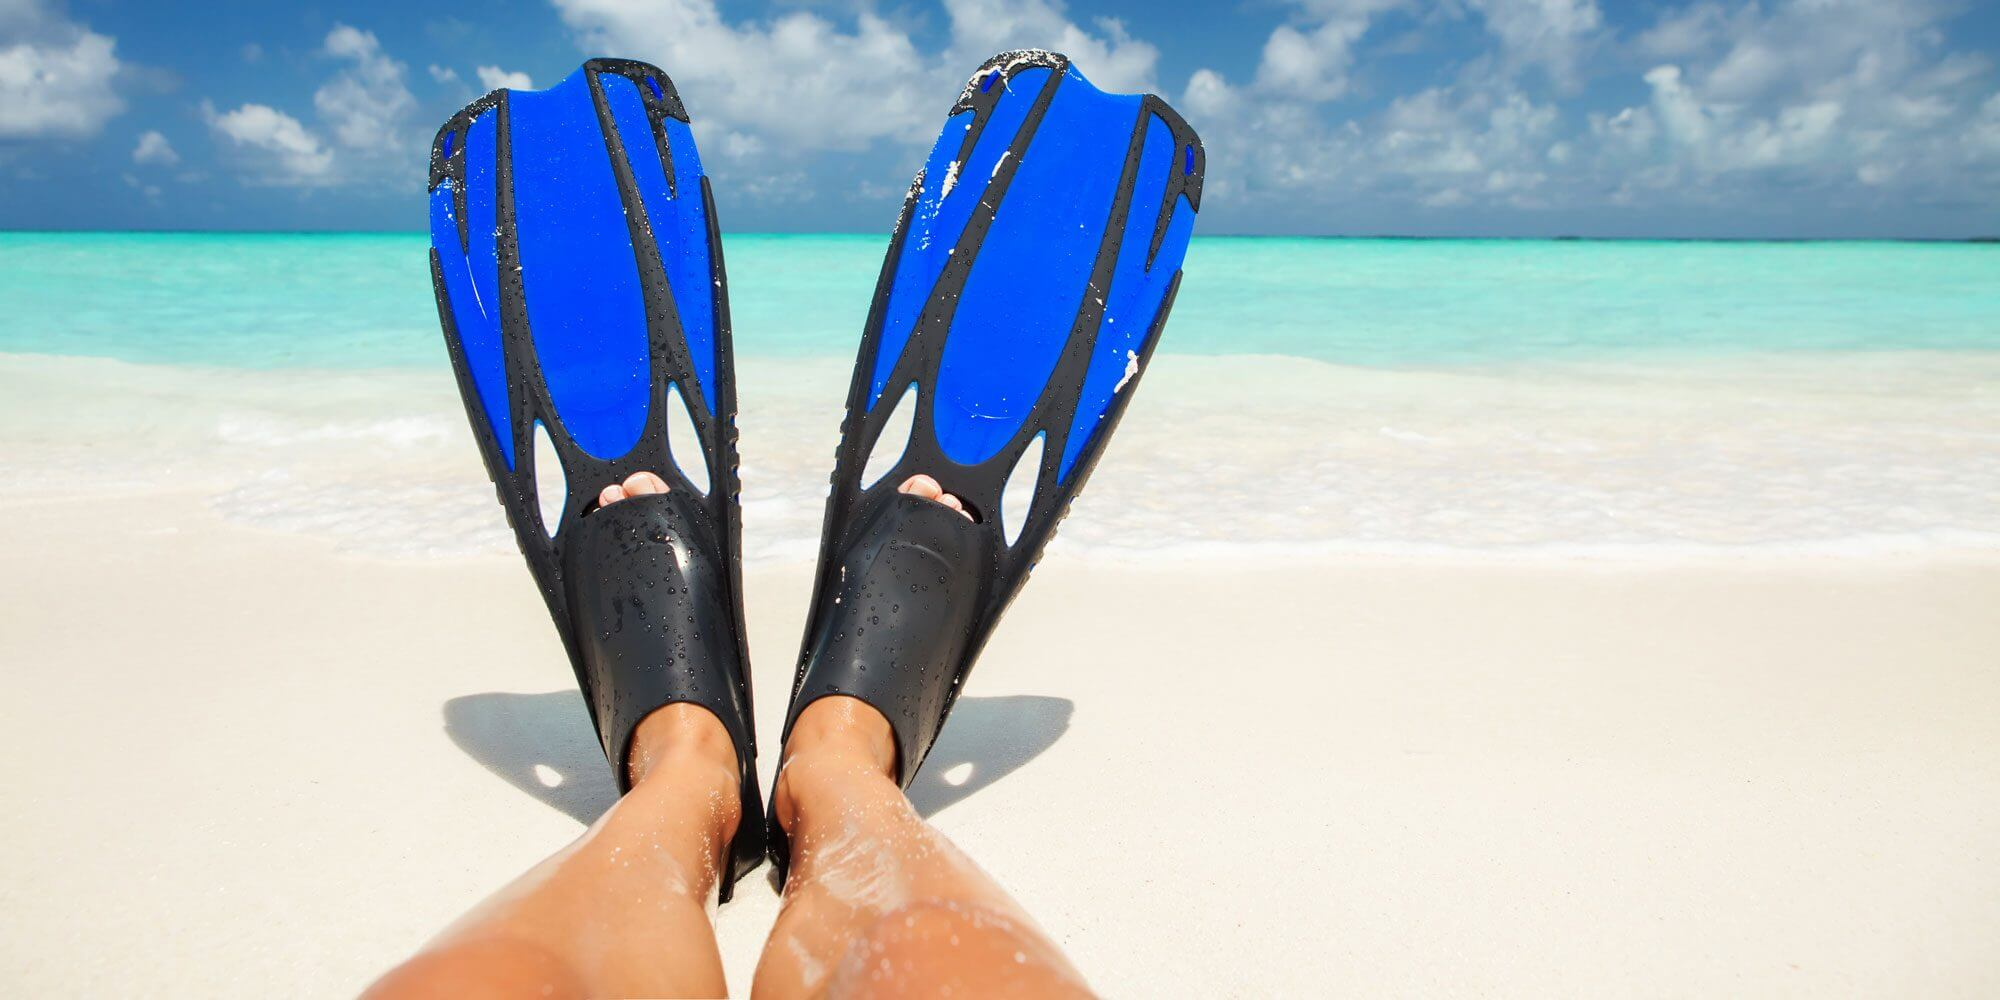 How to buy snorkeling fins